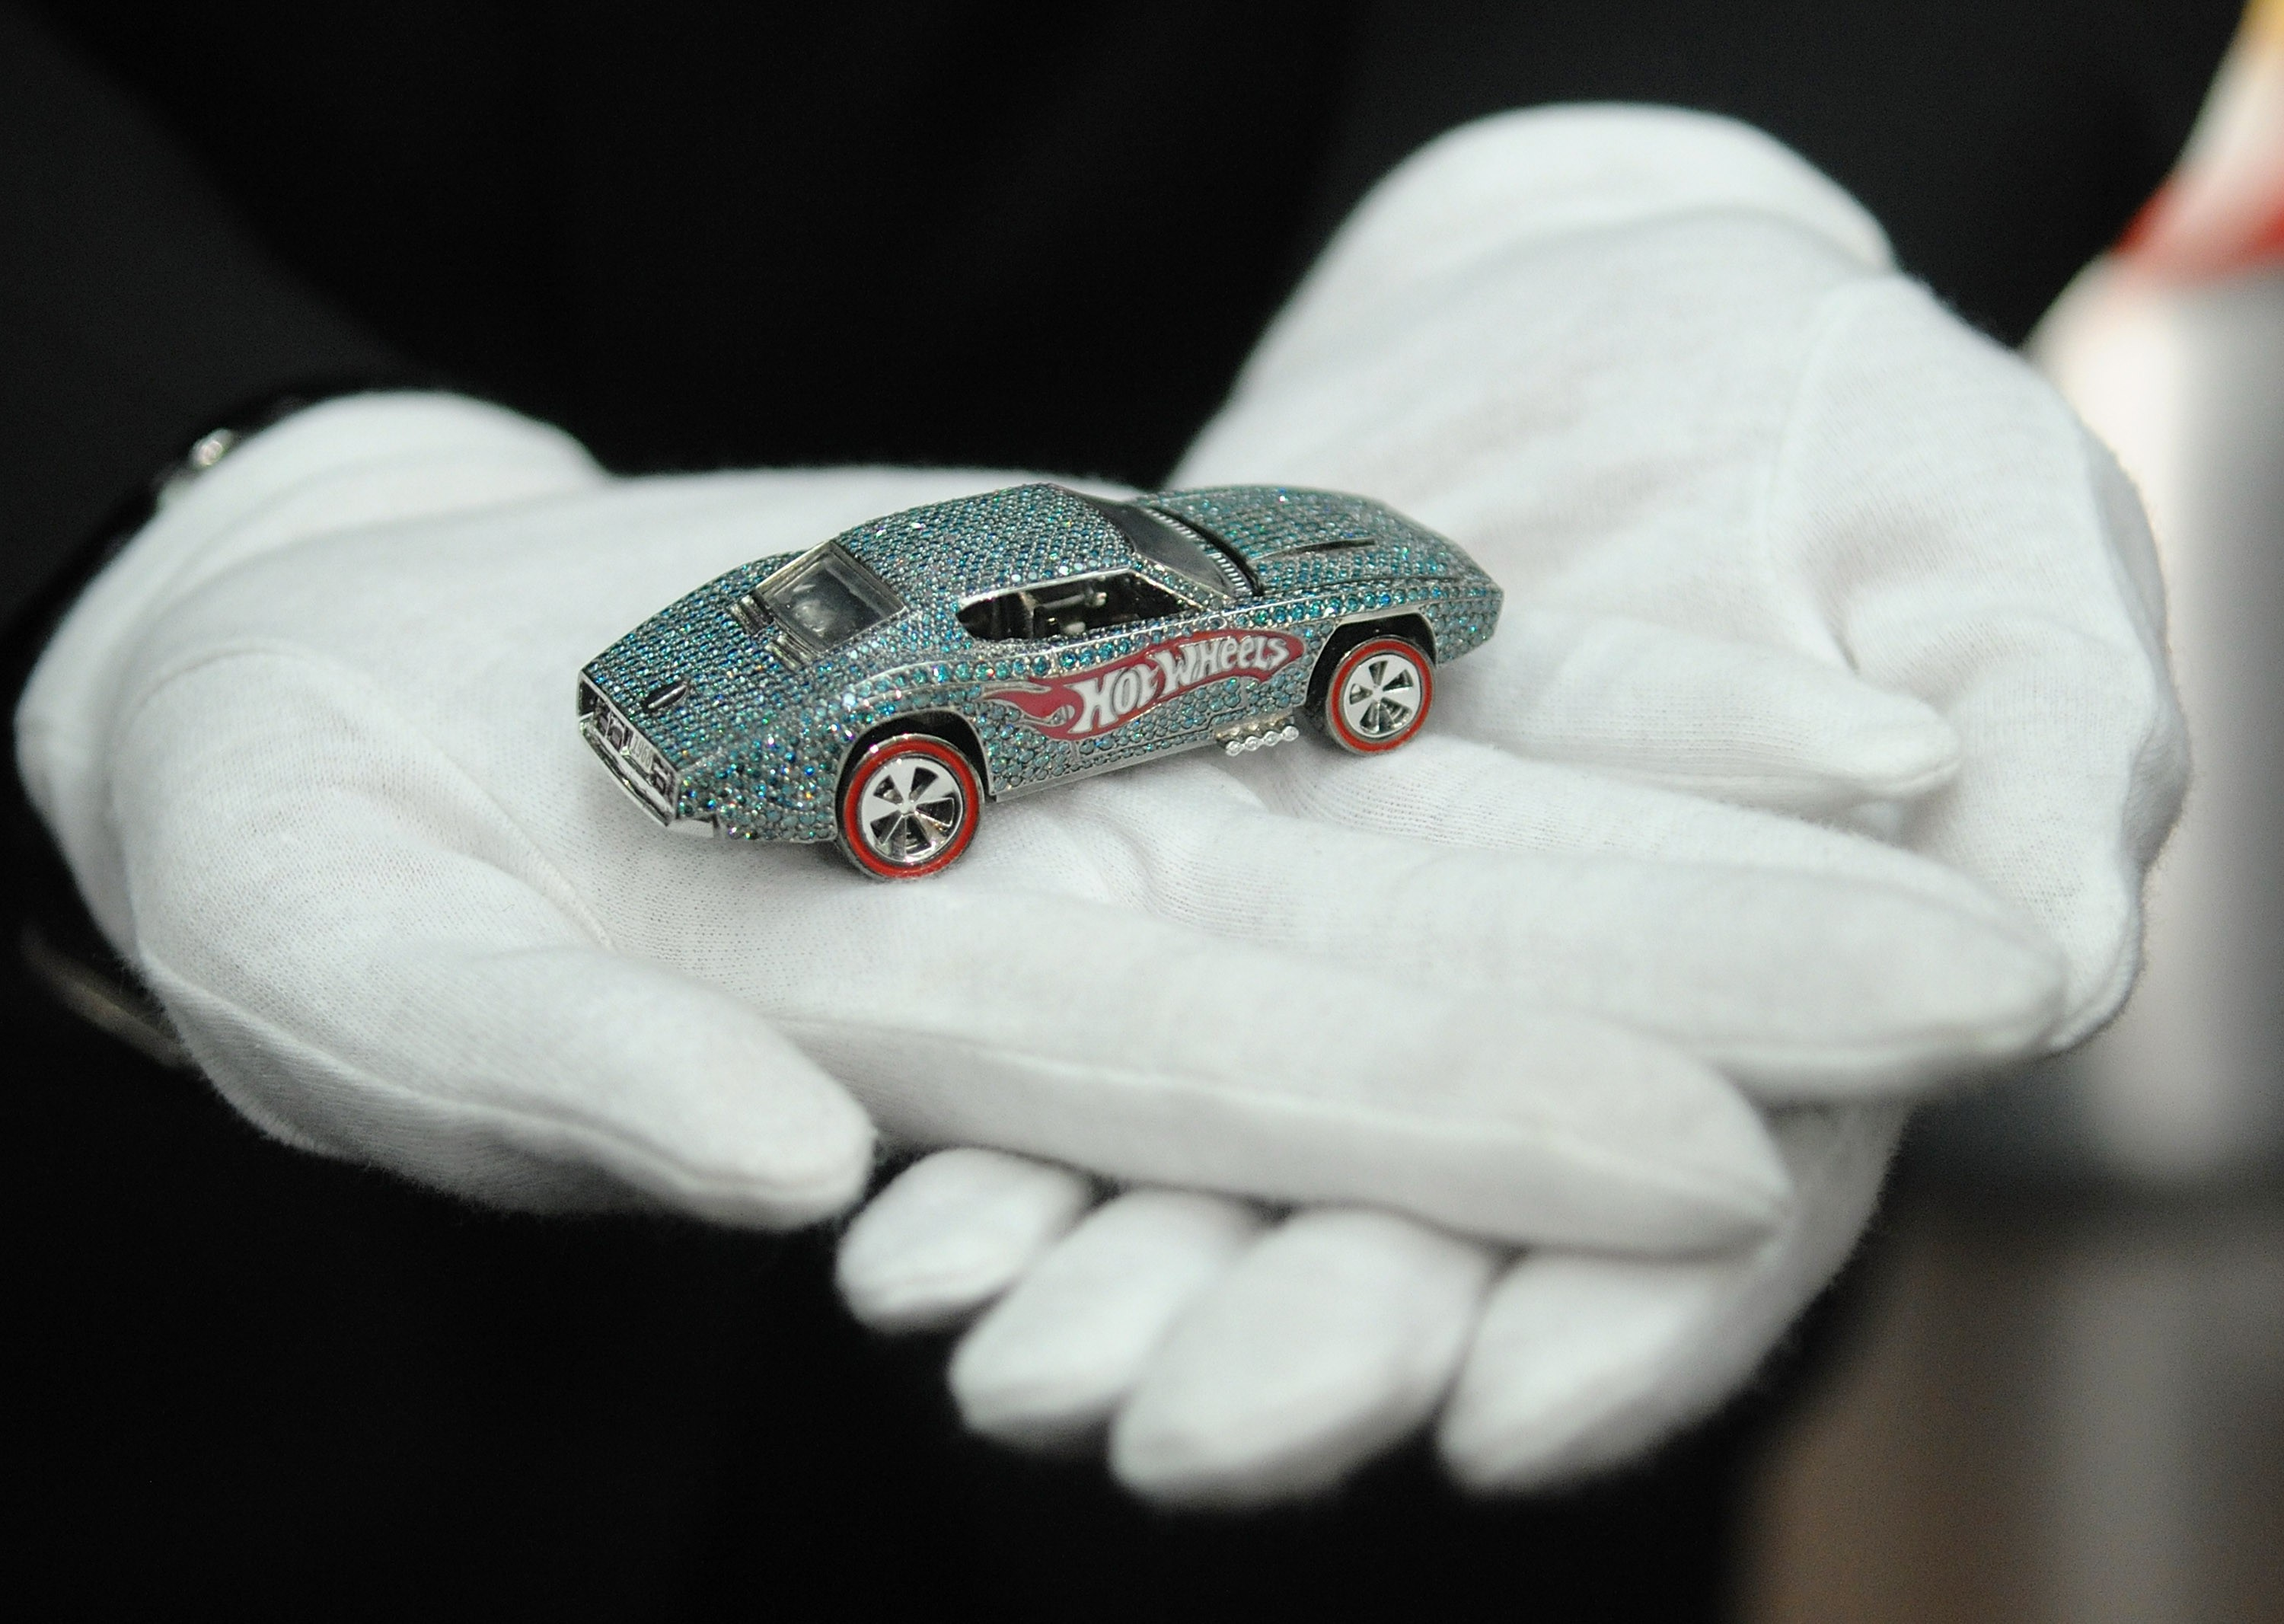 The Most Expensive Hot Wheels Car